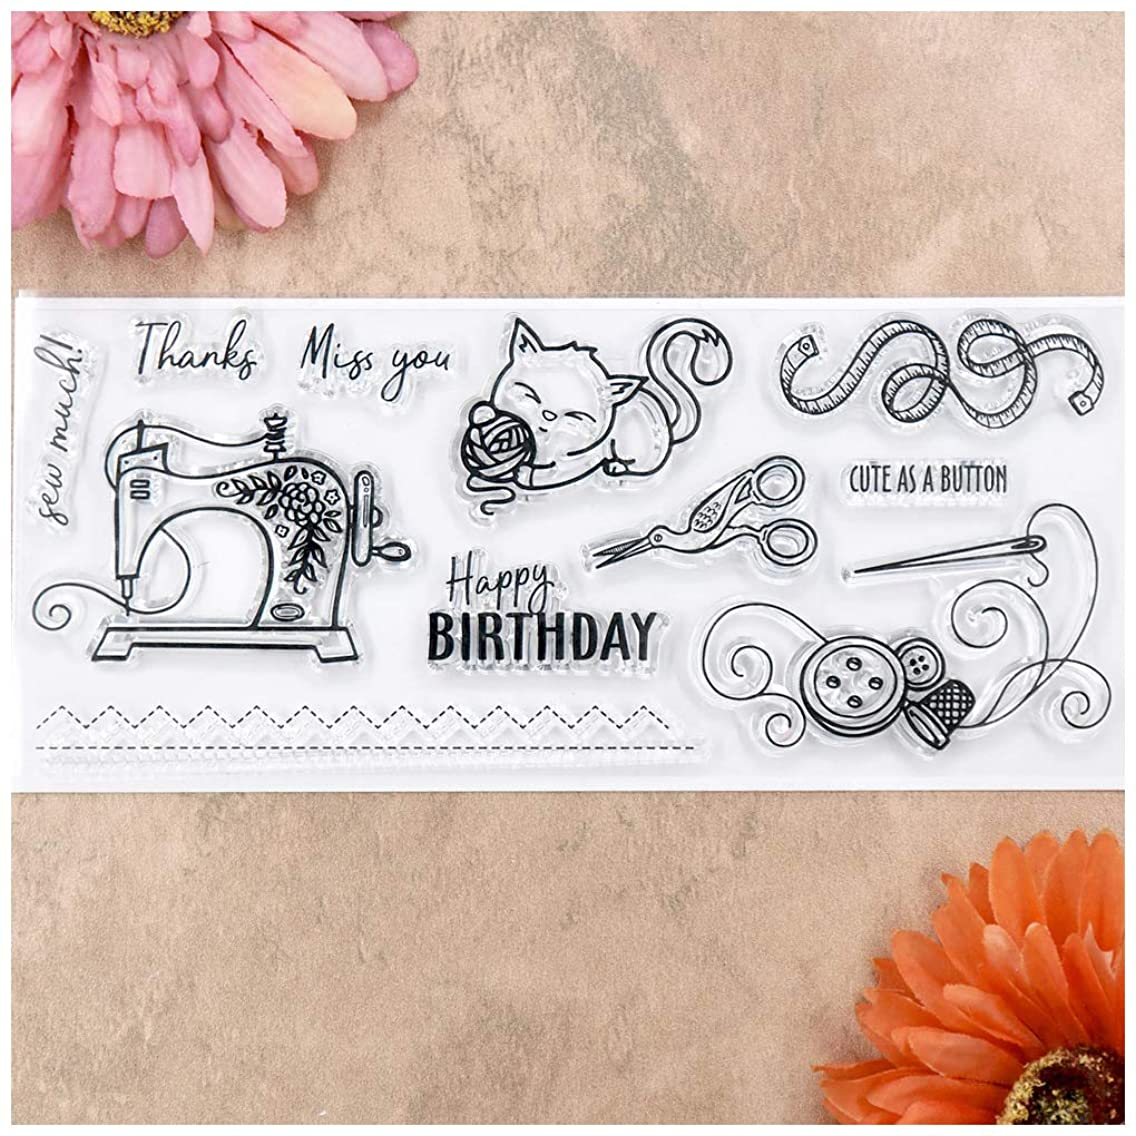 Kwan Crafts Happy Birthday Sew Thanks Miss You Clear Stamps for Card Making Decoration and DIY Scrapbooking